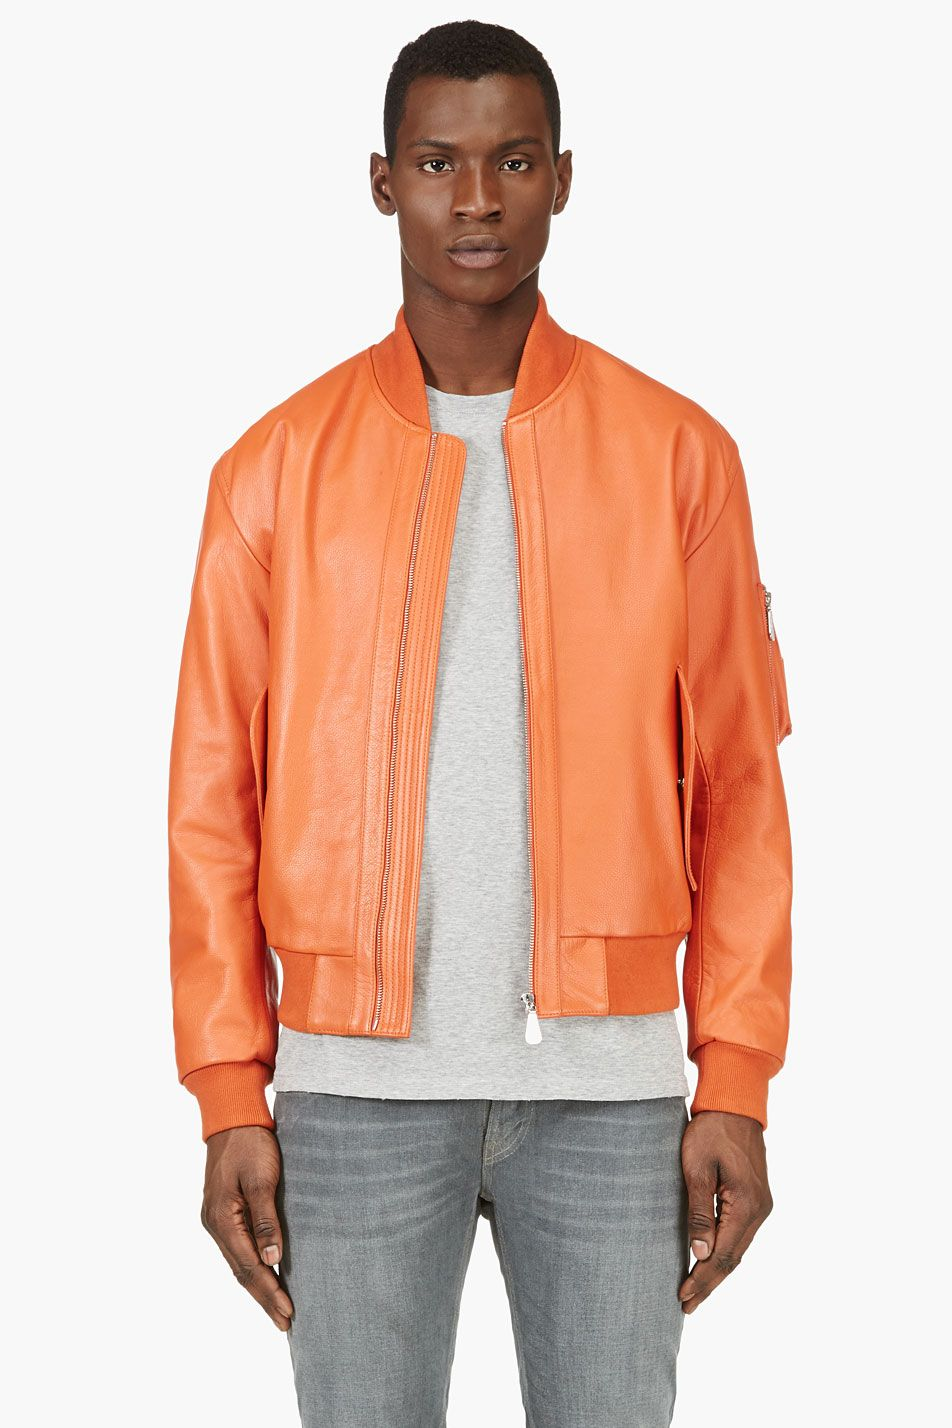 MCQ ALEXANDER MCQUEEN Orange Leather Bomber Jacket | MEN'S STYLE ...